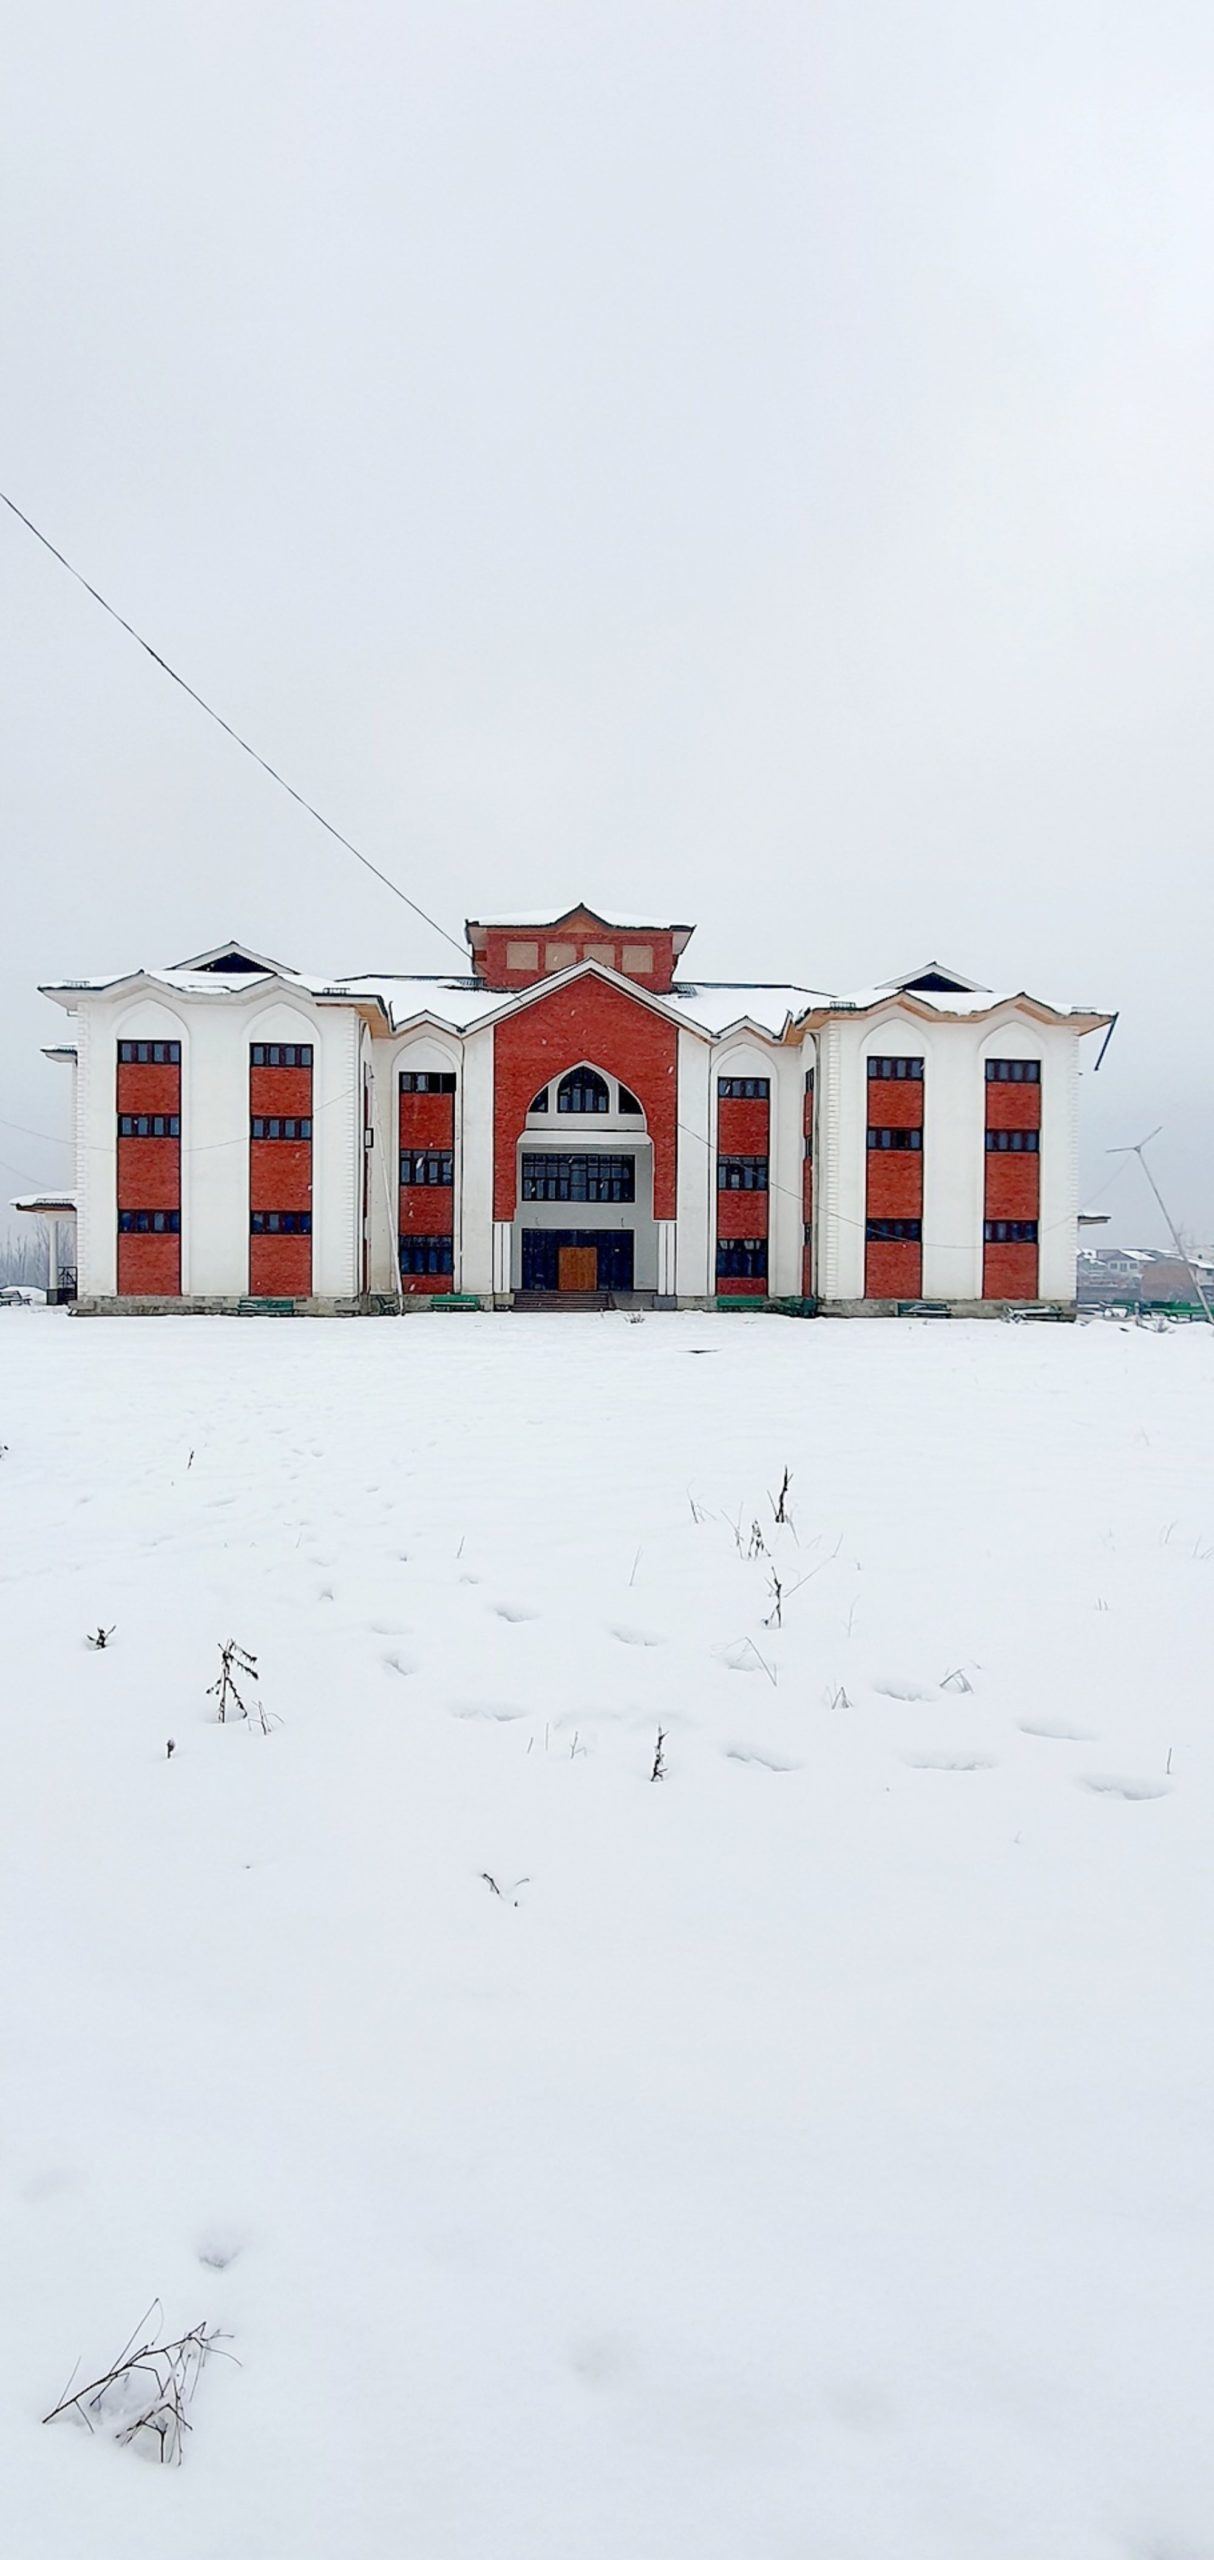 SRINAGAR WOMEN'S COLLEGE